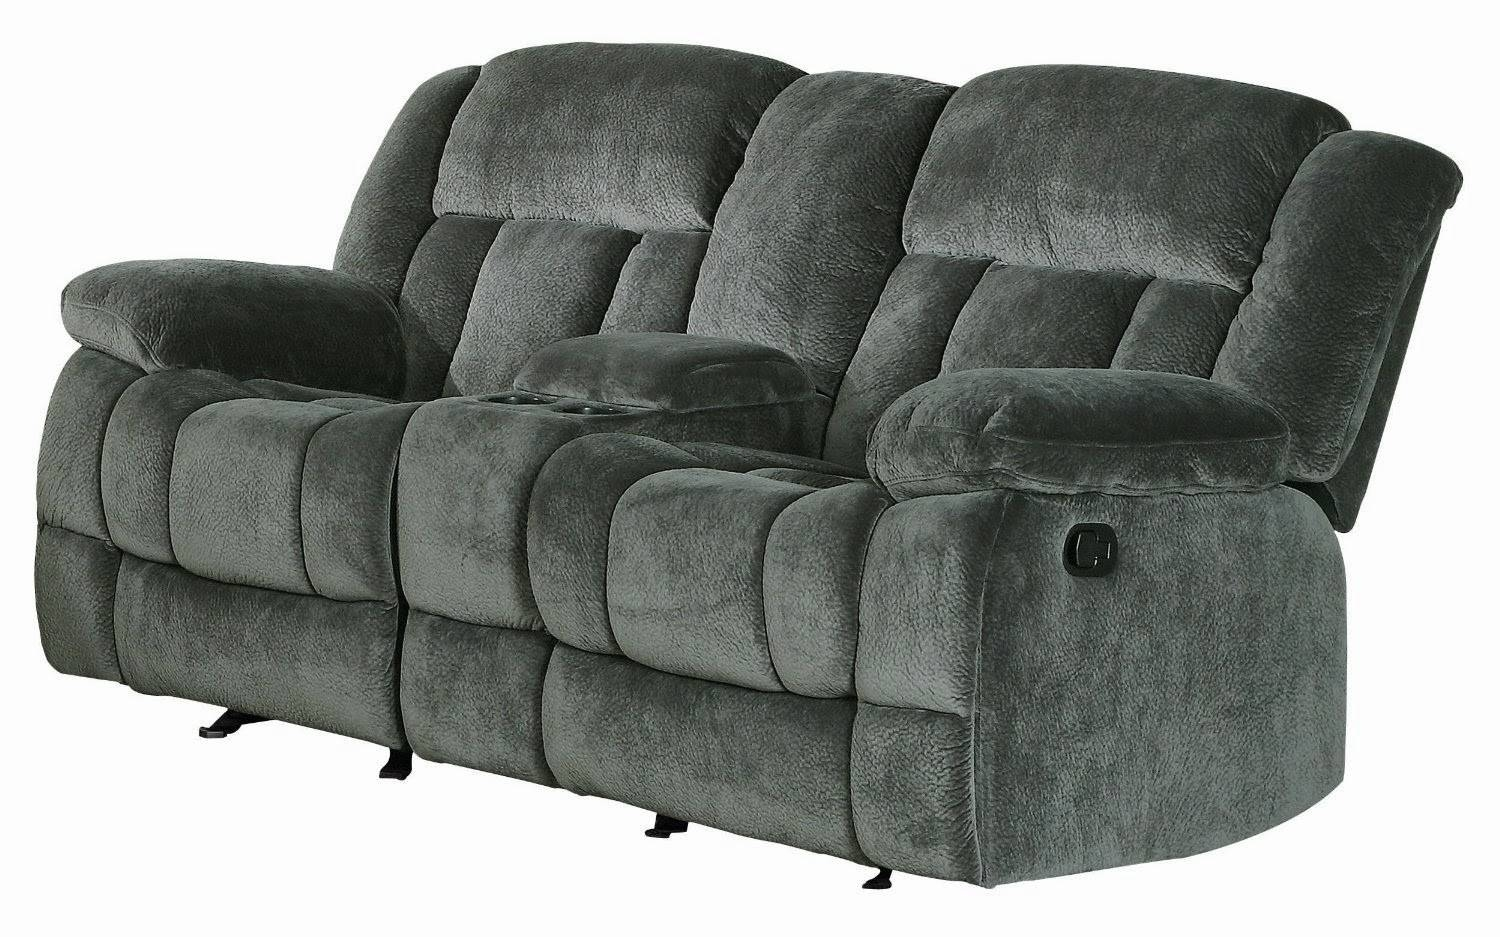 Sofas Center : Magnificent Reclining Sofath Console Images Concept Pertaining To Sofas With Consoles (View 13 of 30)